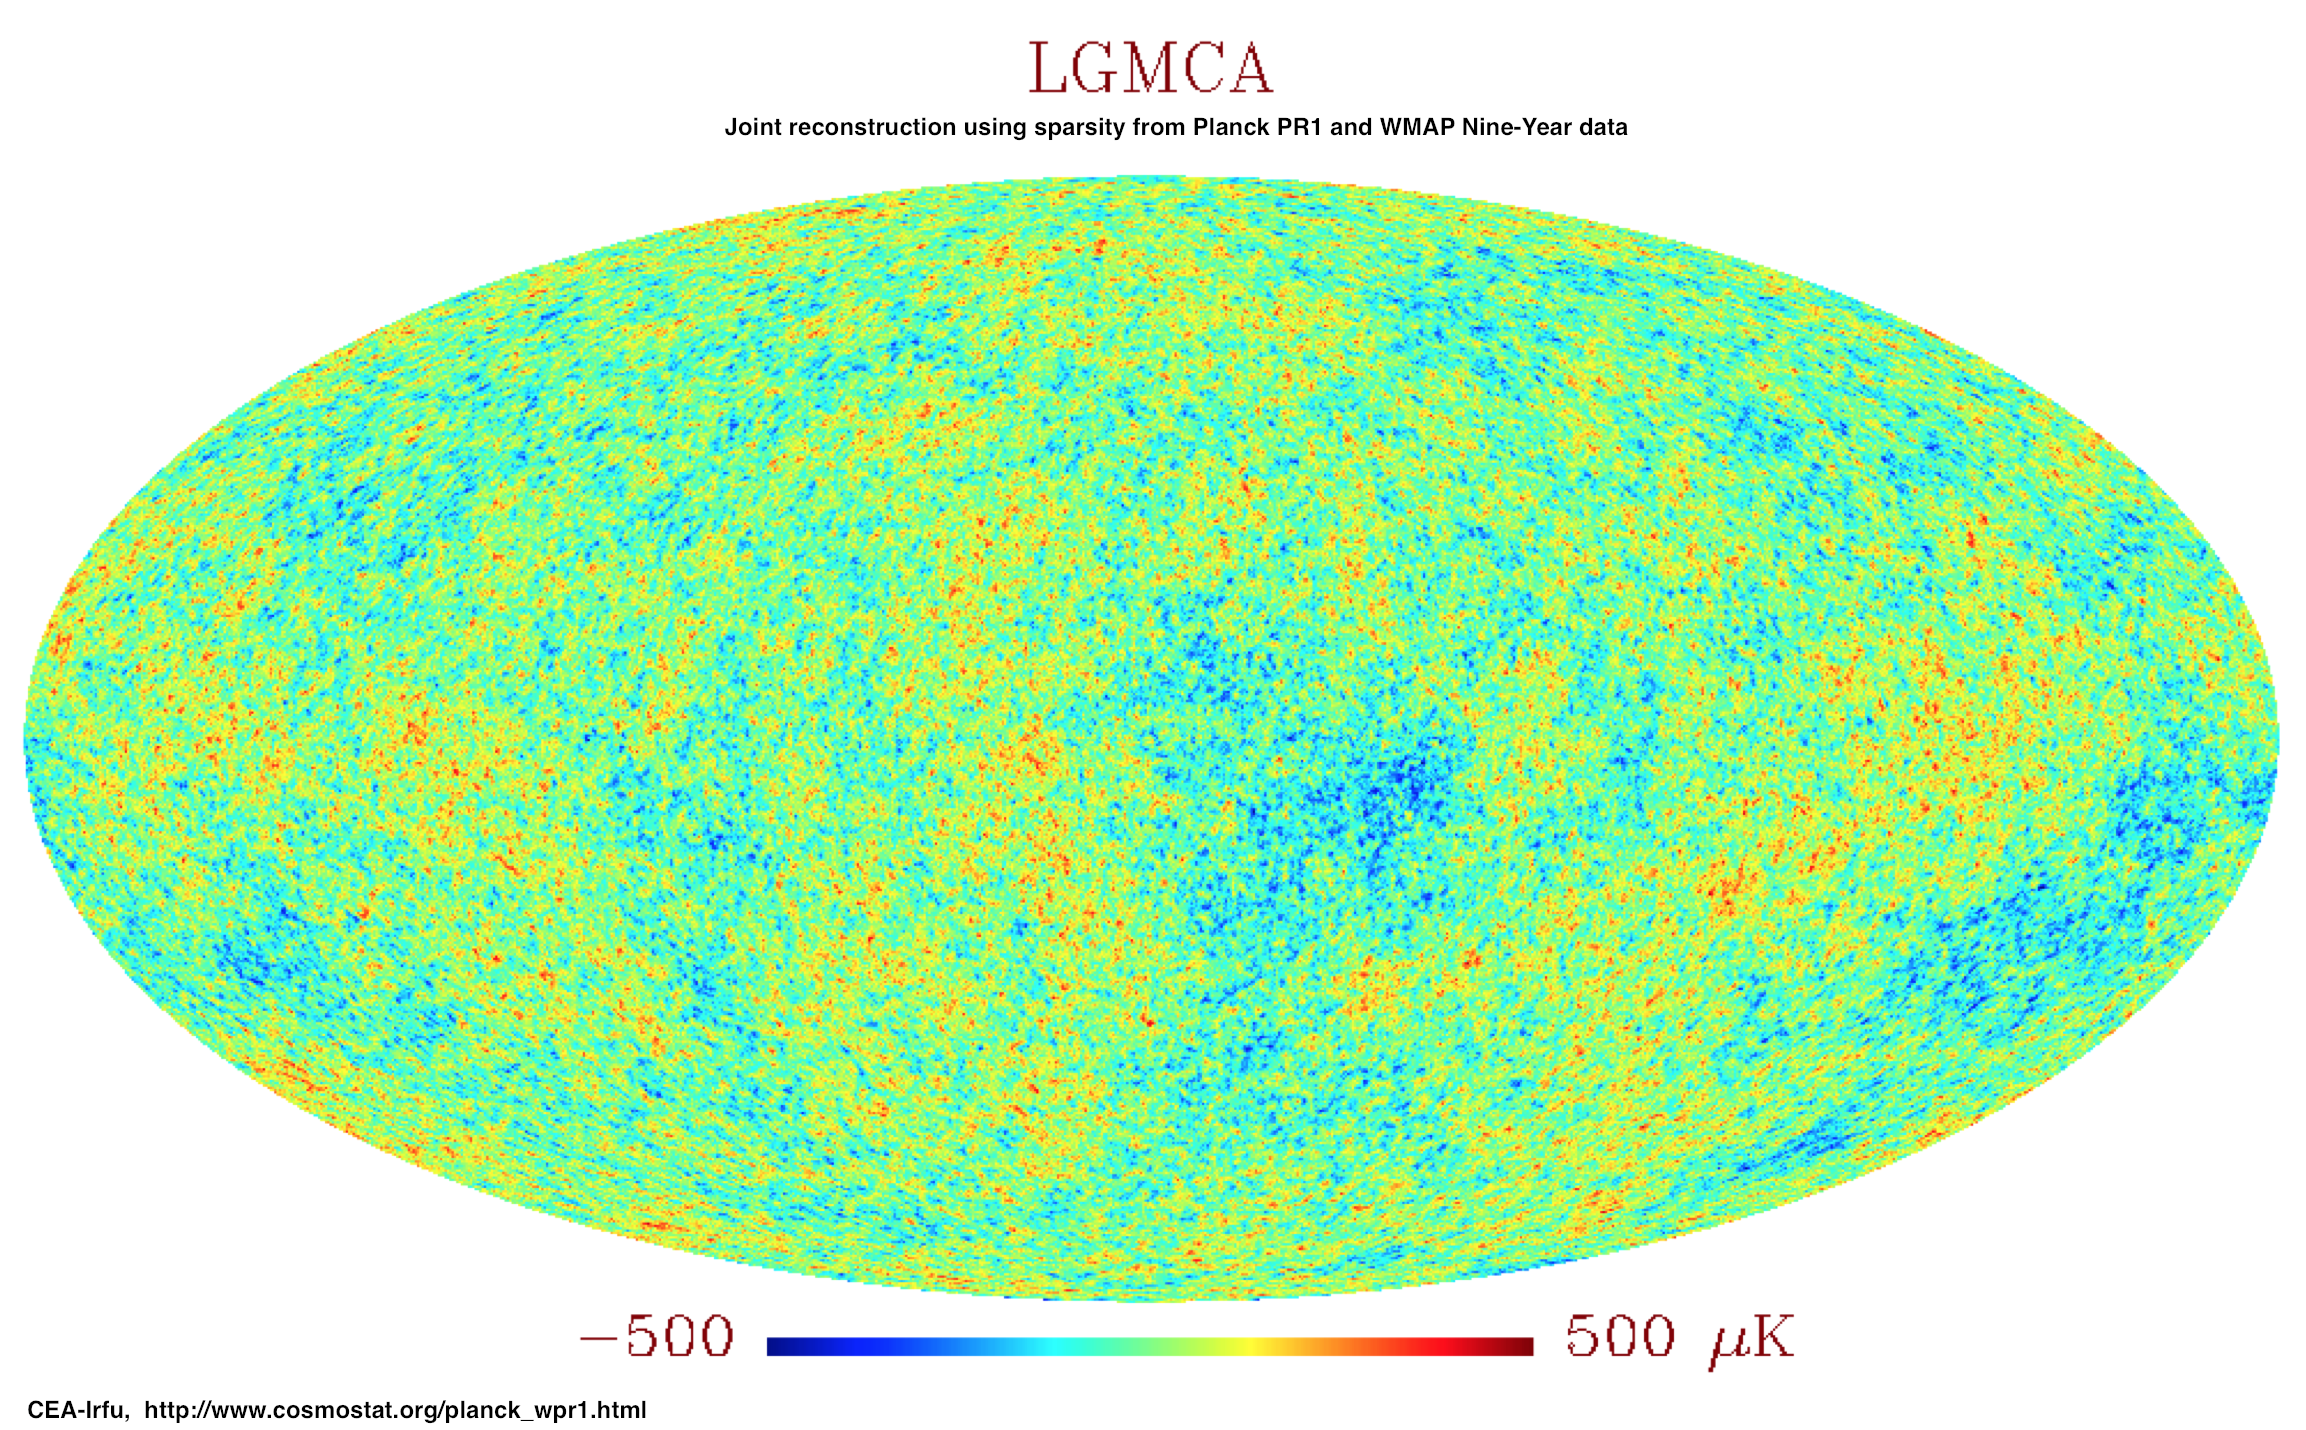 Joint WMAP9 and Planck PR1 CMB map